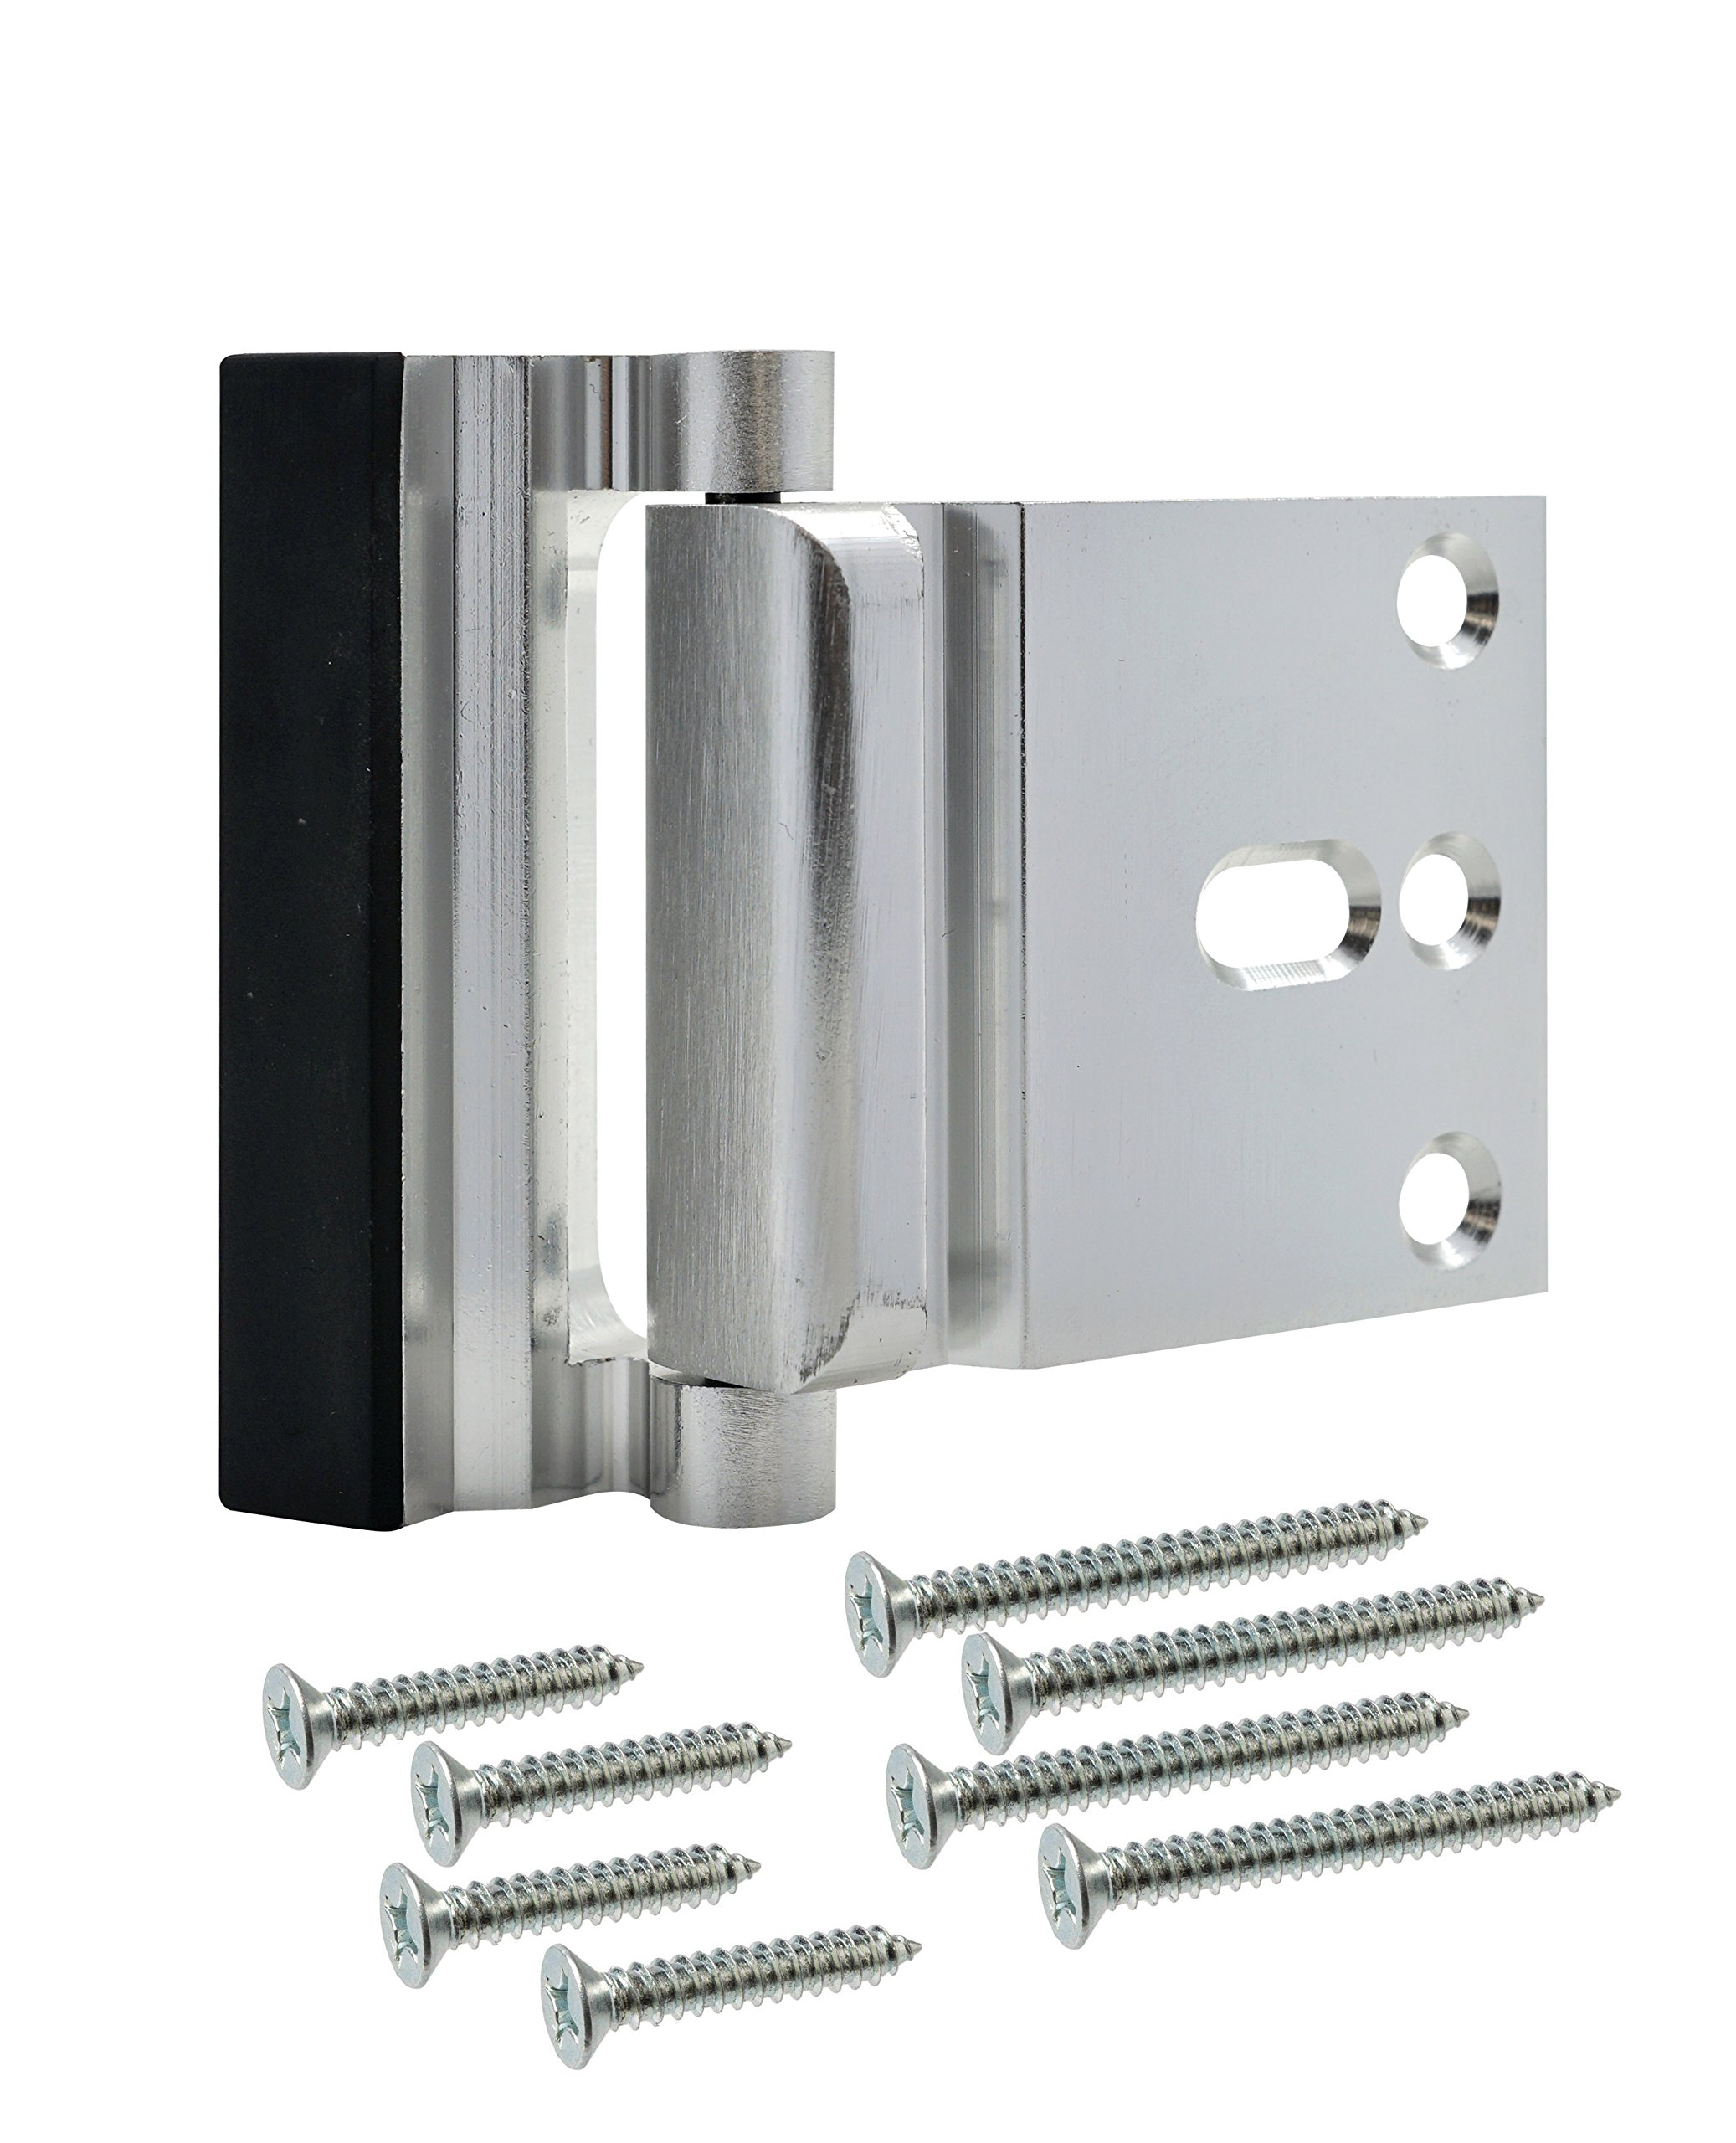 Lamosh Door Reinforcement Lock – for Extra Safety to Your Home and Prevent Unauthorized Entry. (Brushed Silver)